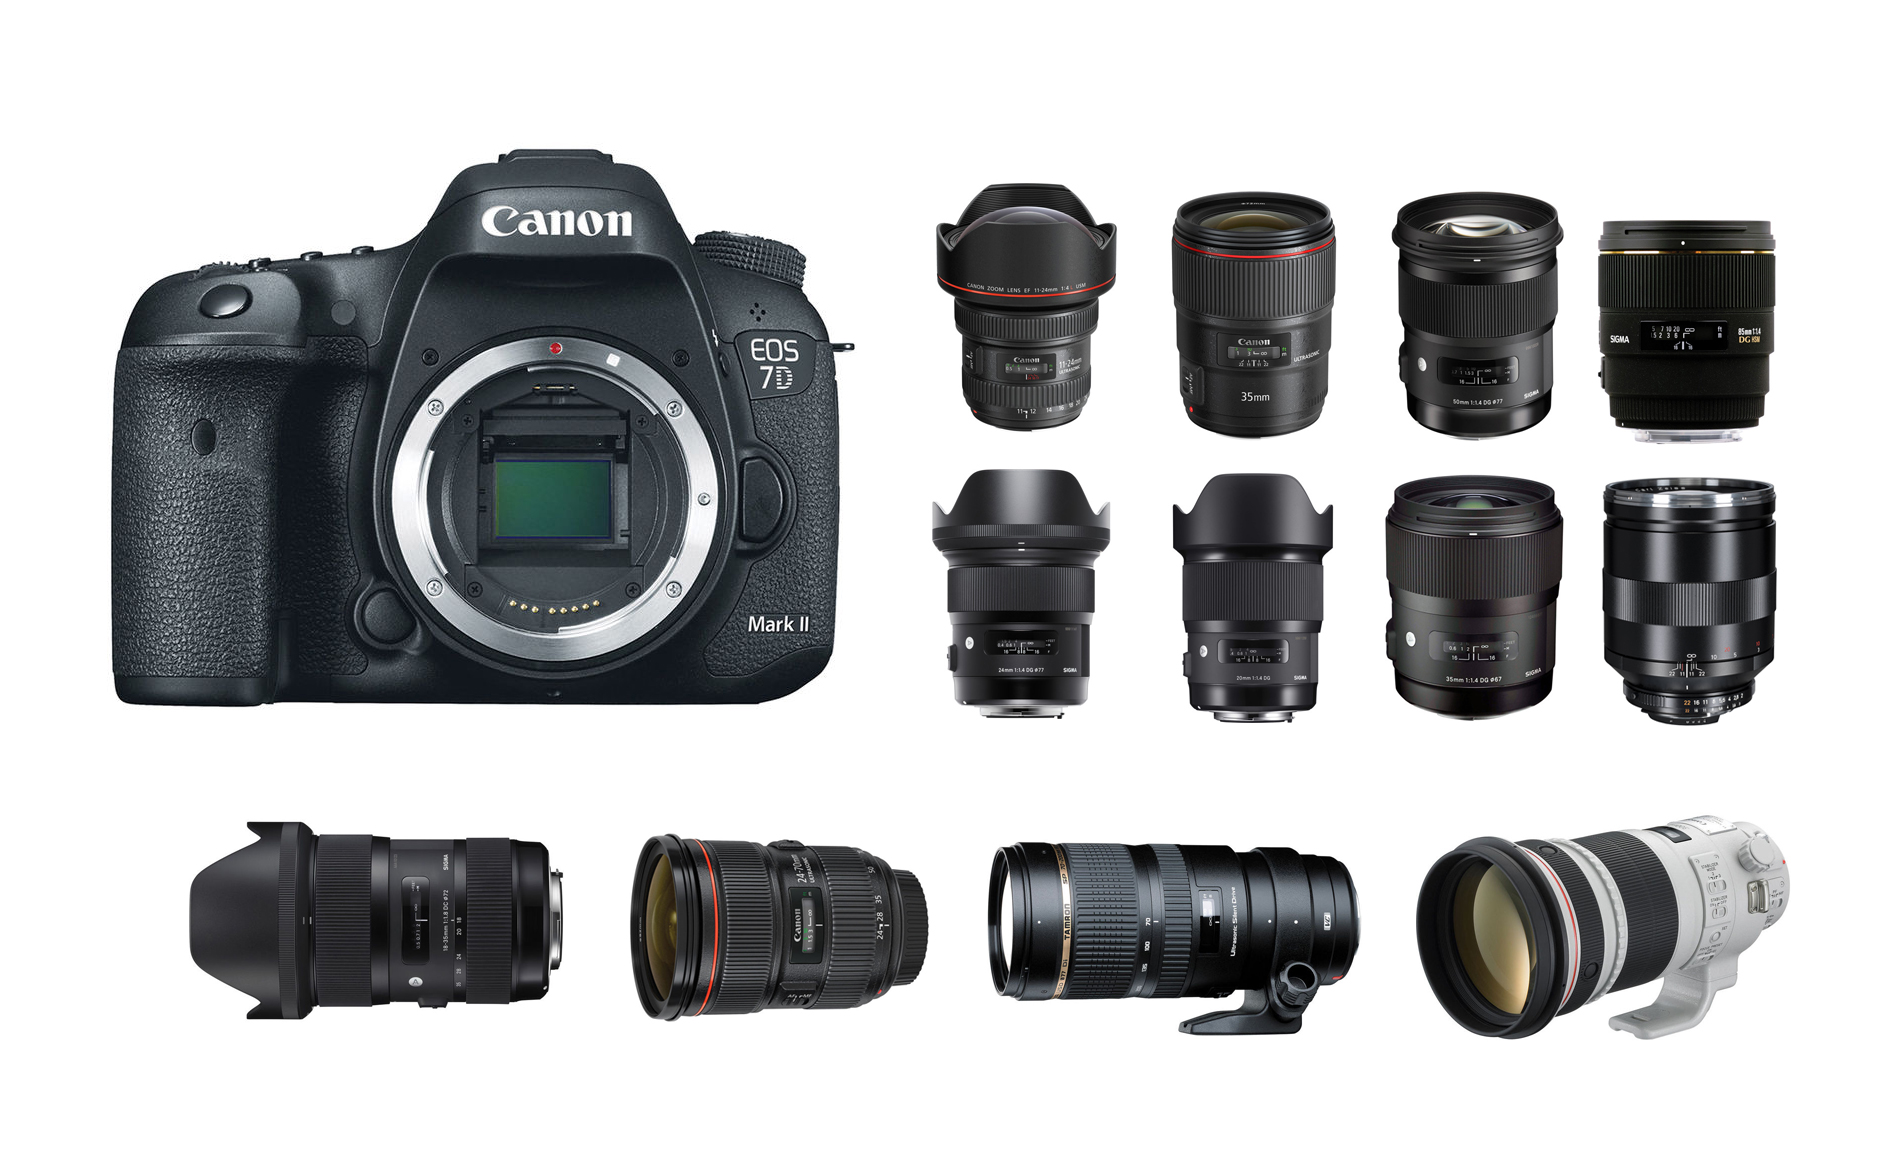 Where Do You Get Rental Lenses For DSLR Cameras in Bangalore?